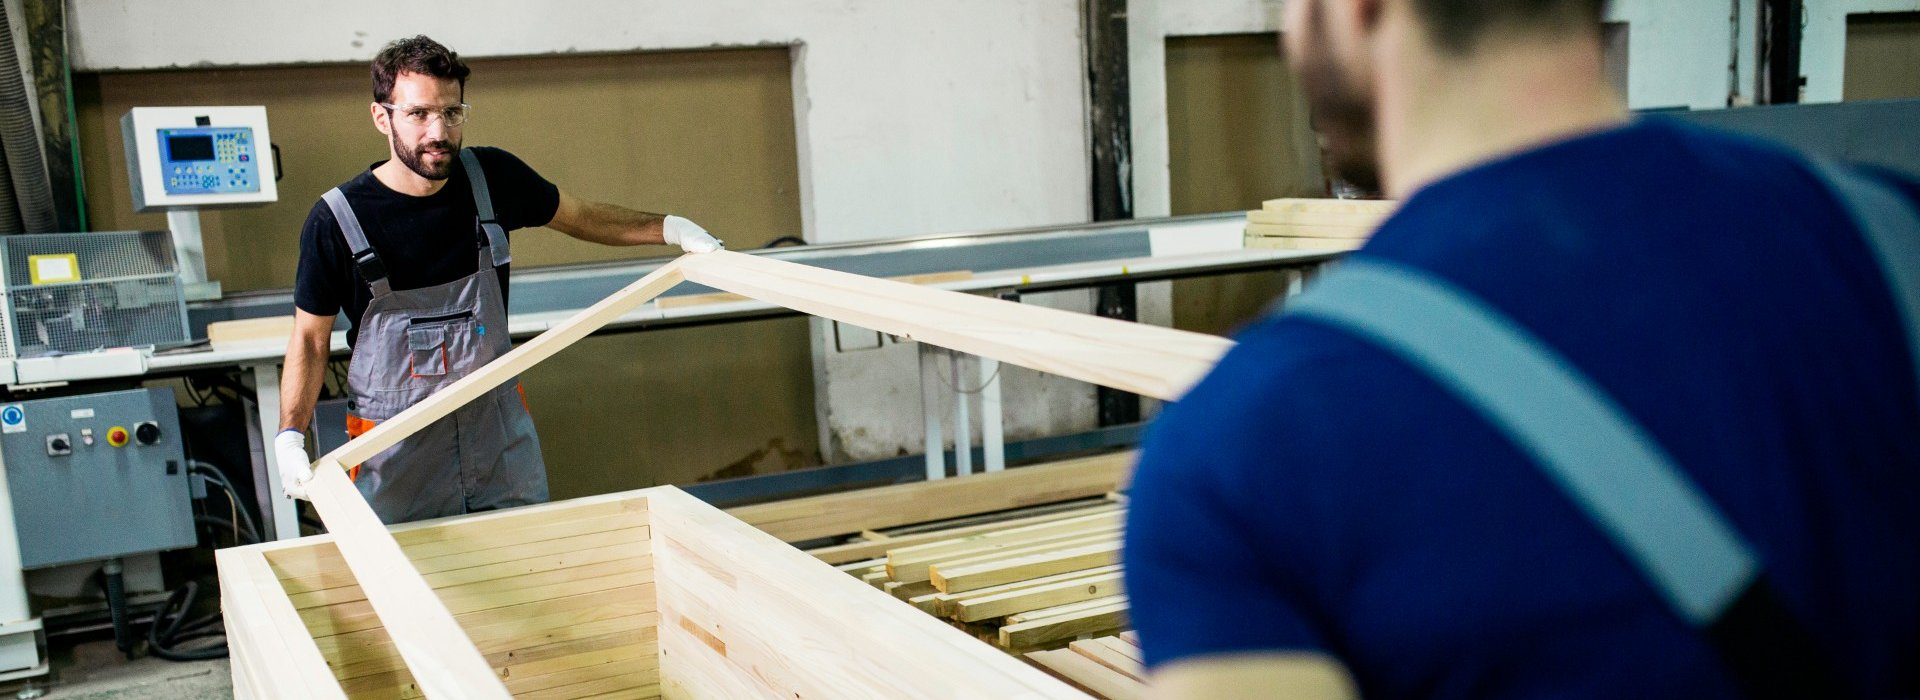 Image of carpenters with wooden frame